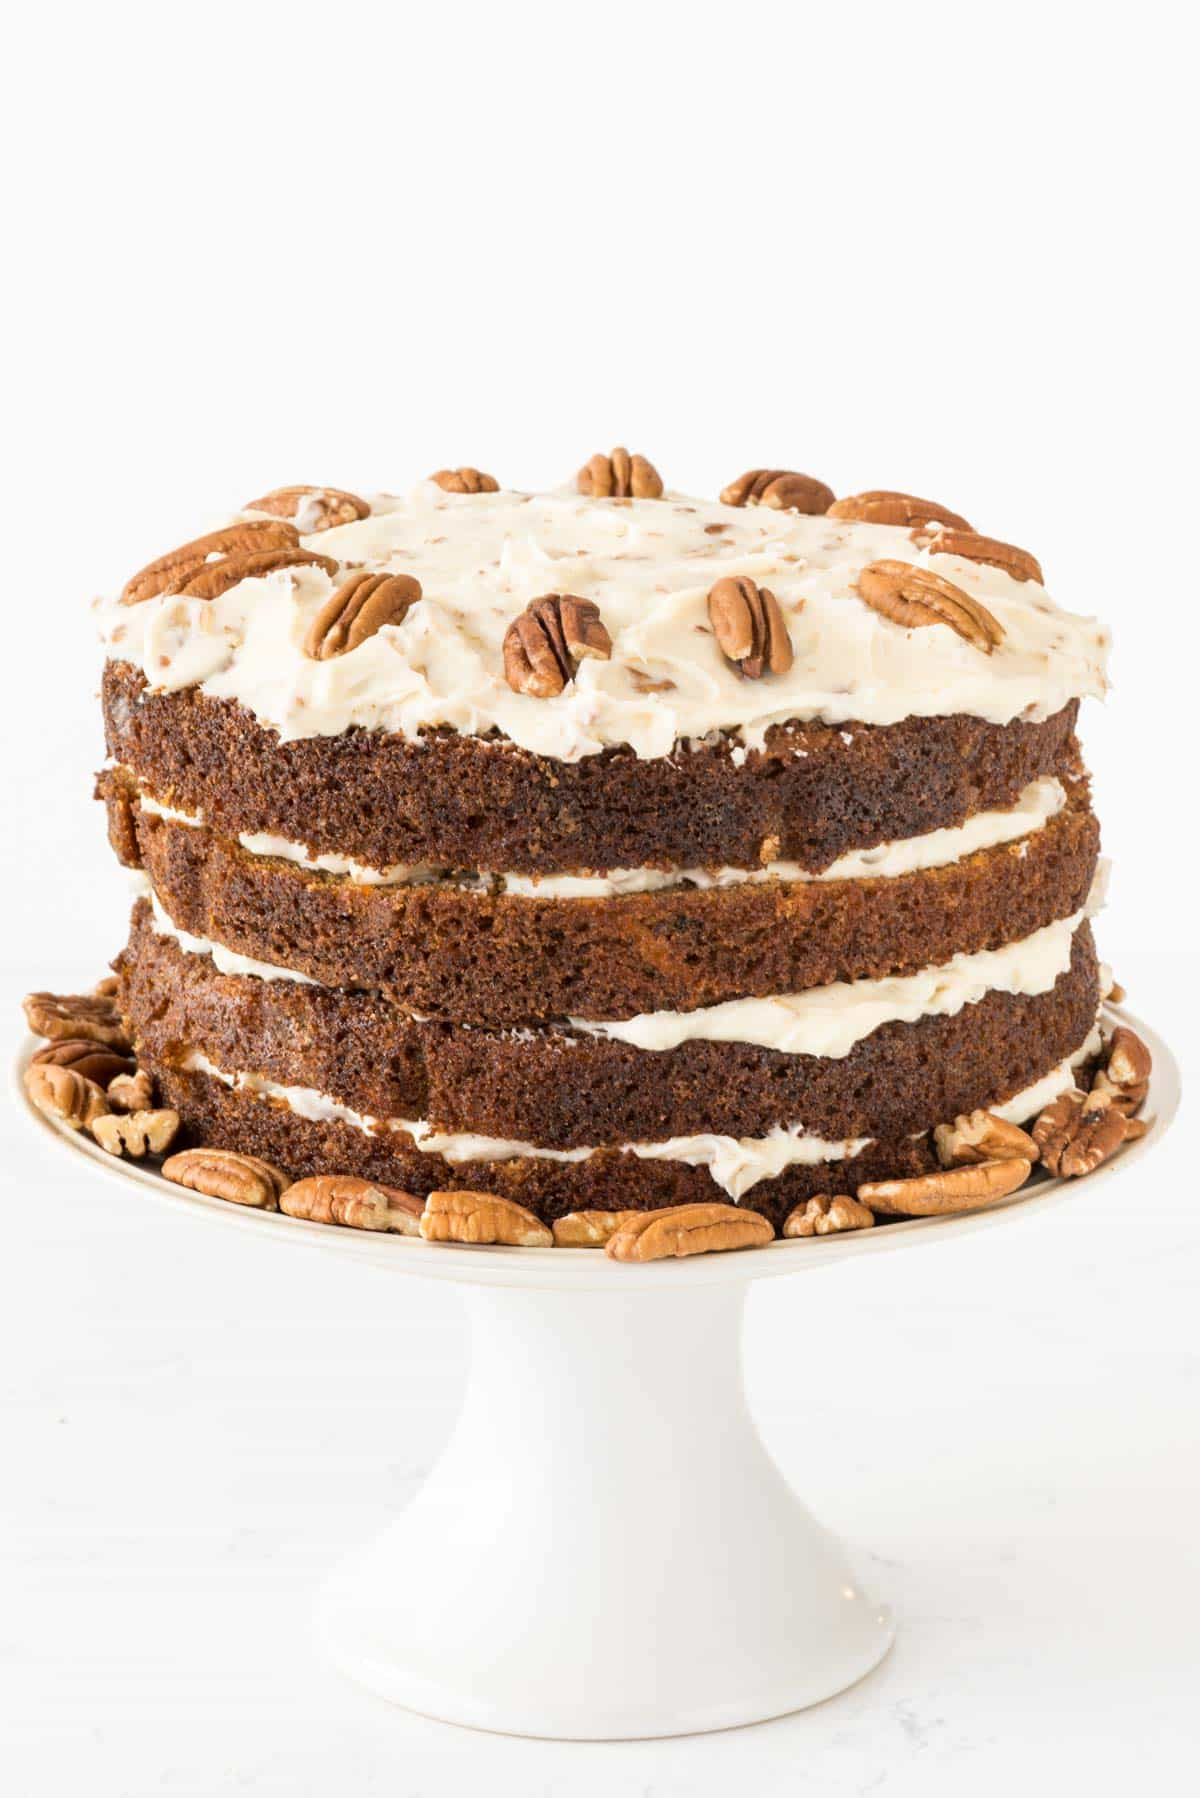 Naked Carrot Cake Recipe with Pecan Cream Cheese Frosting